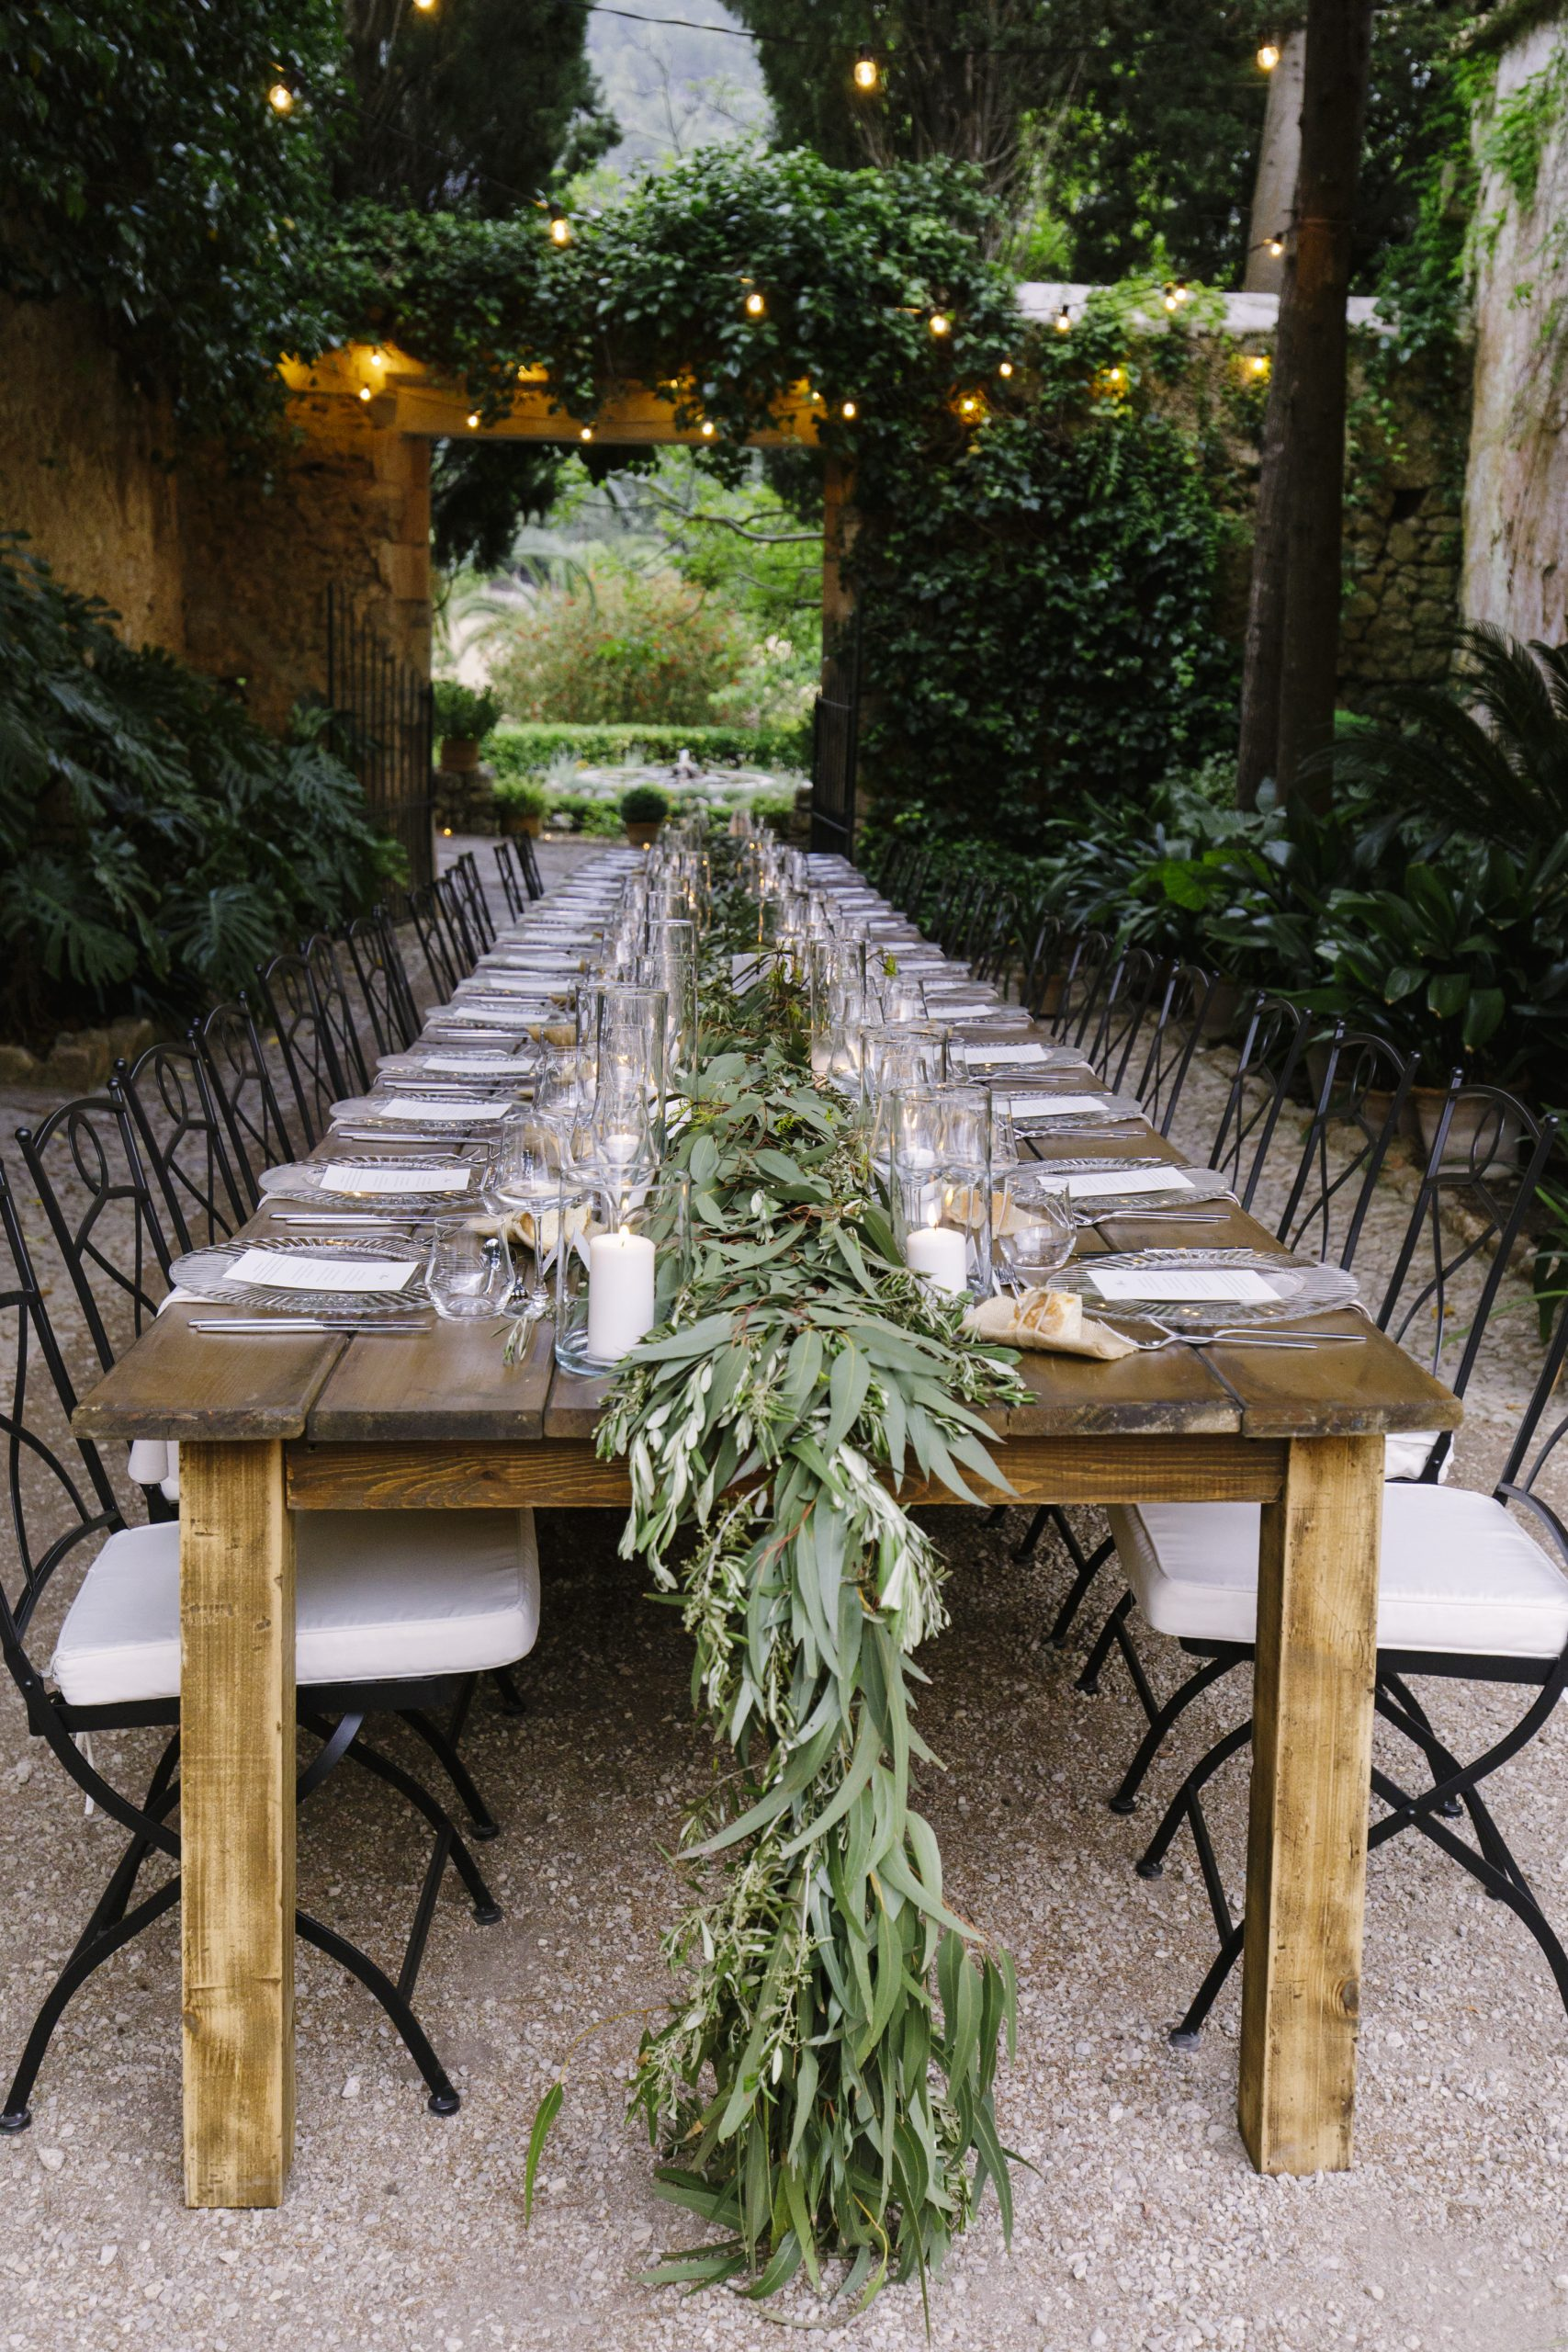 Where to do my wedding in Spain